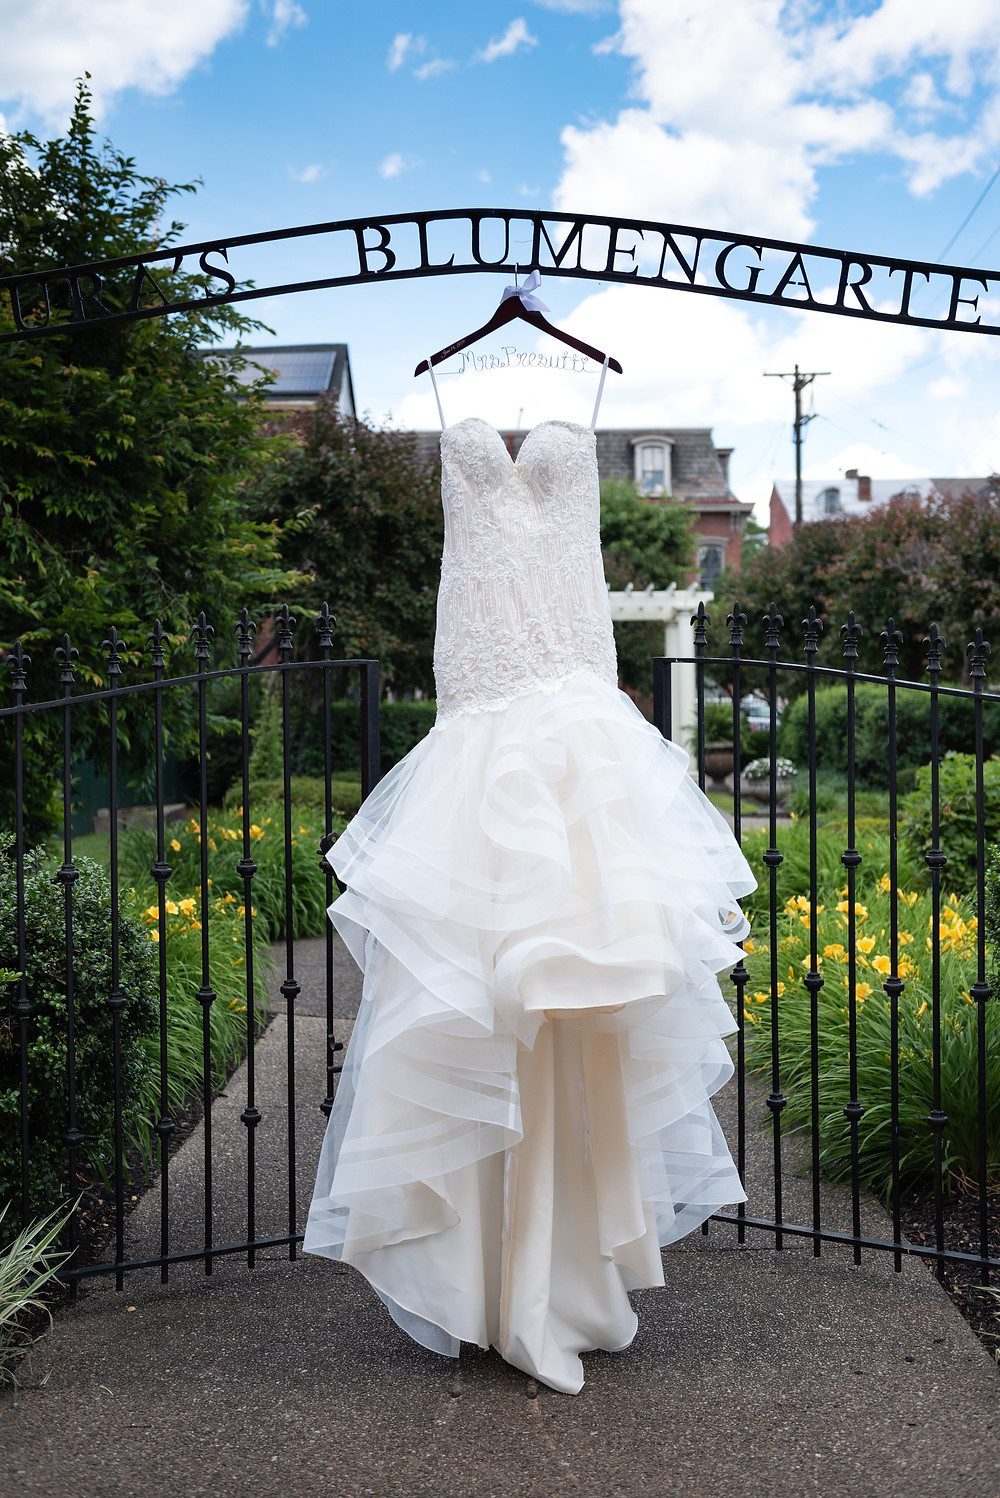 Mermaid style wedding dress hanging in the garden at The Priory in PIttsburgh